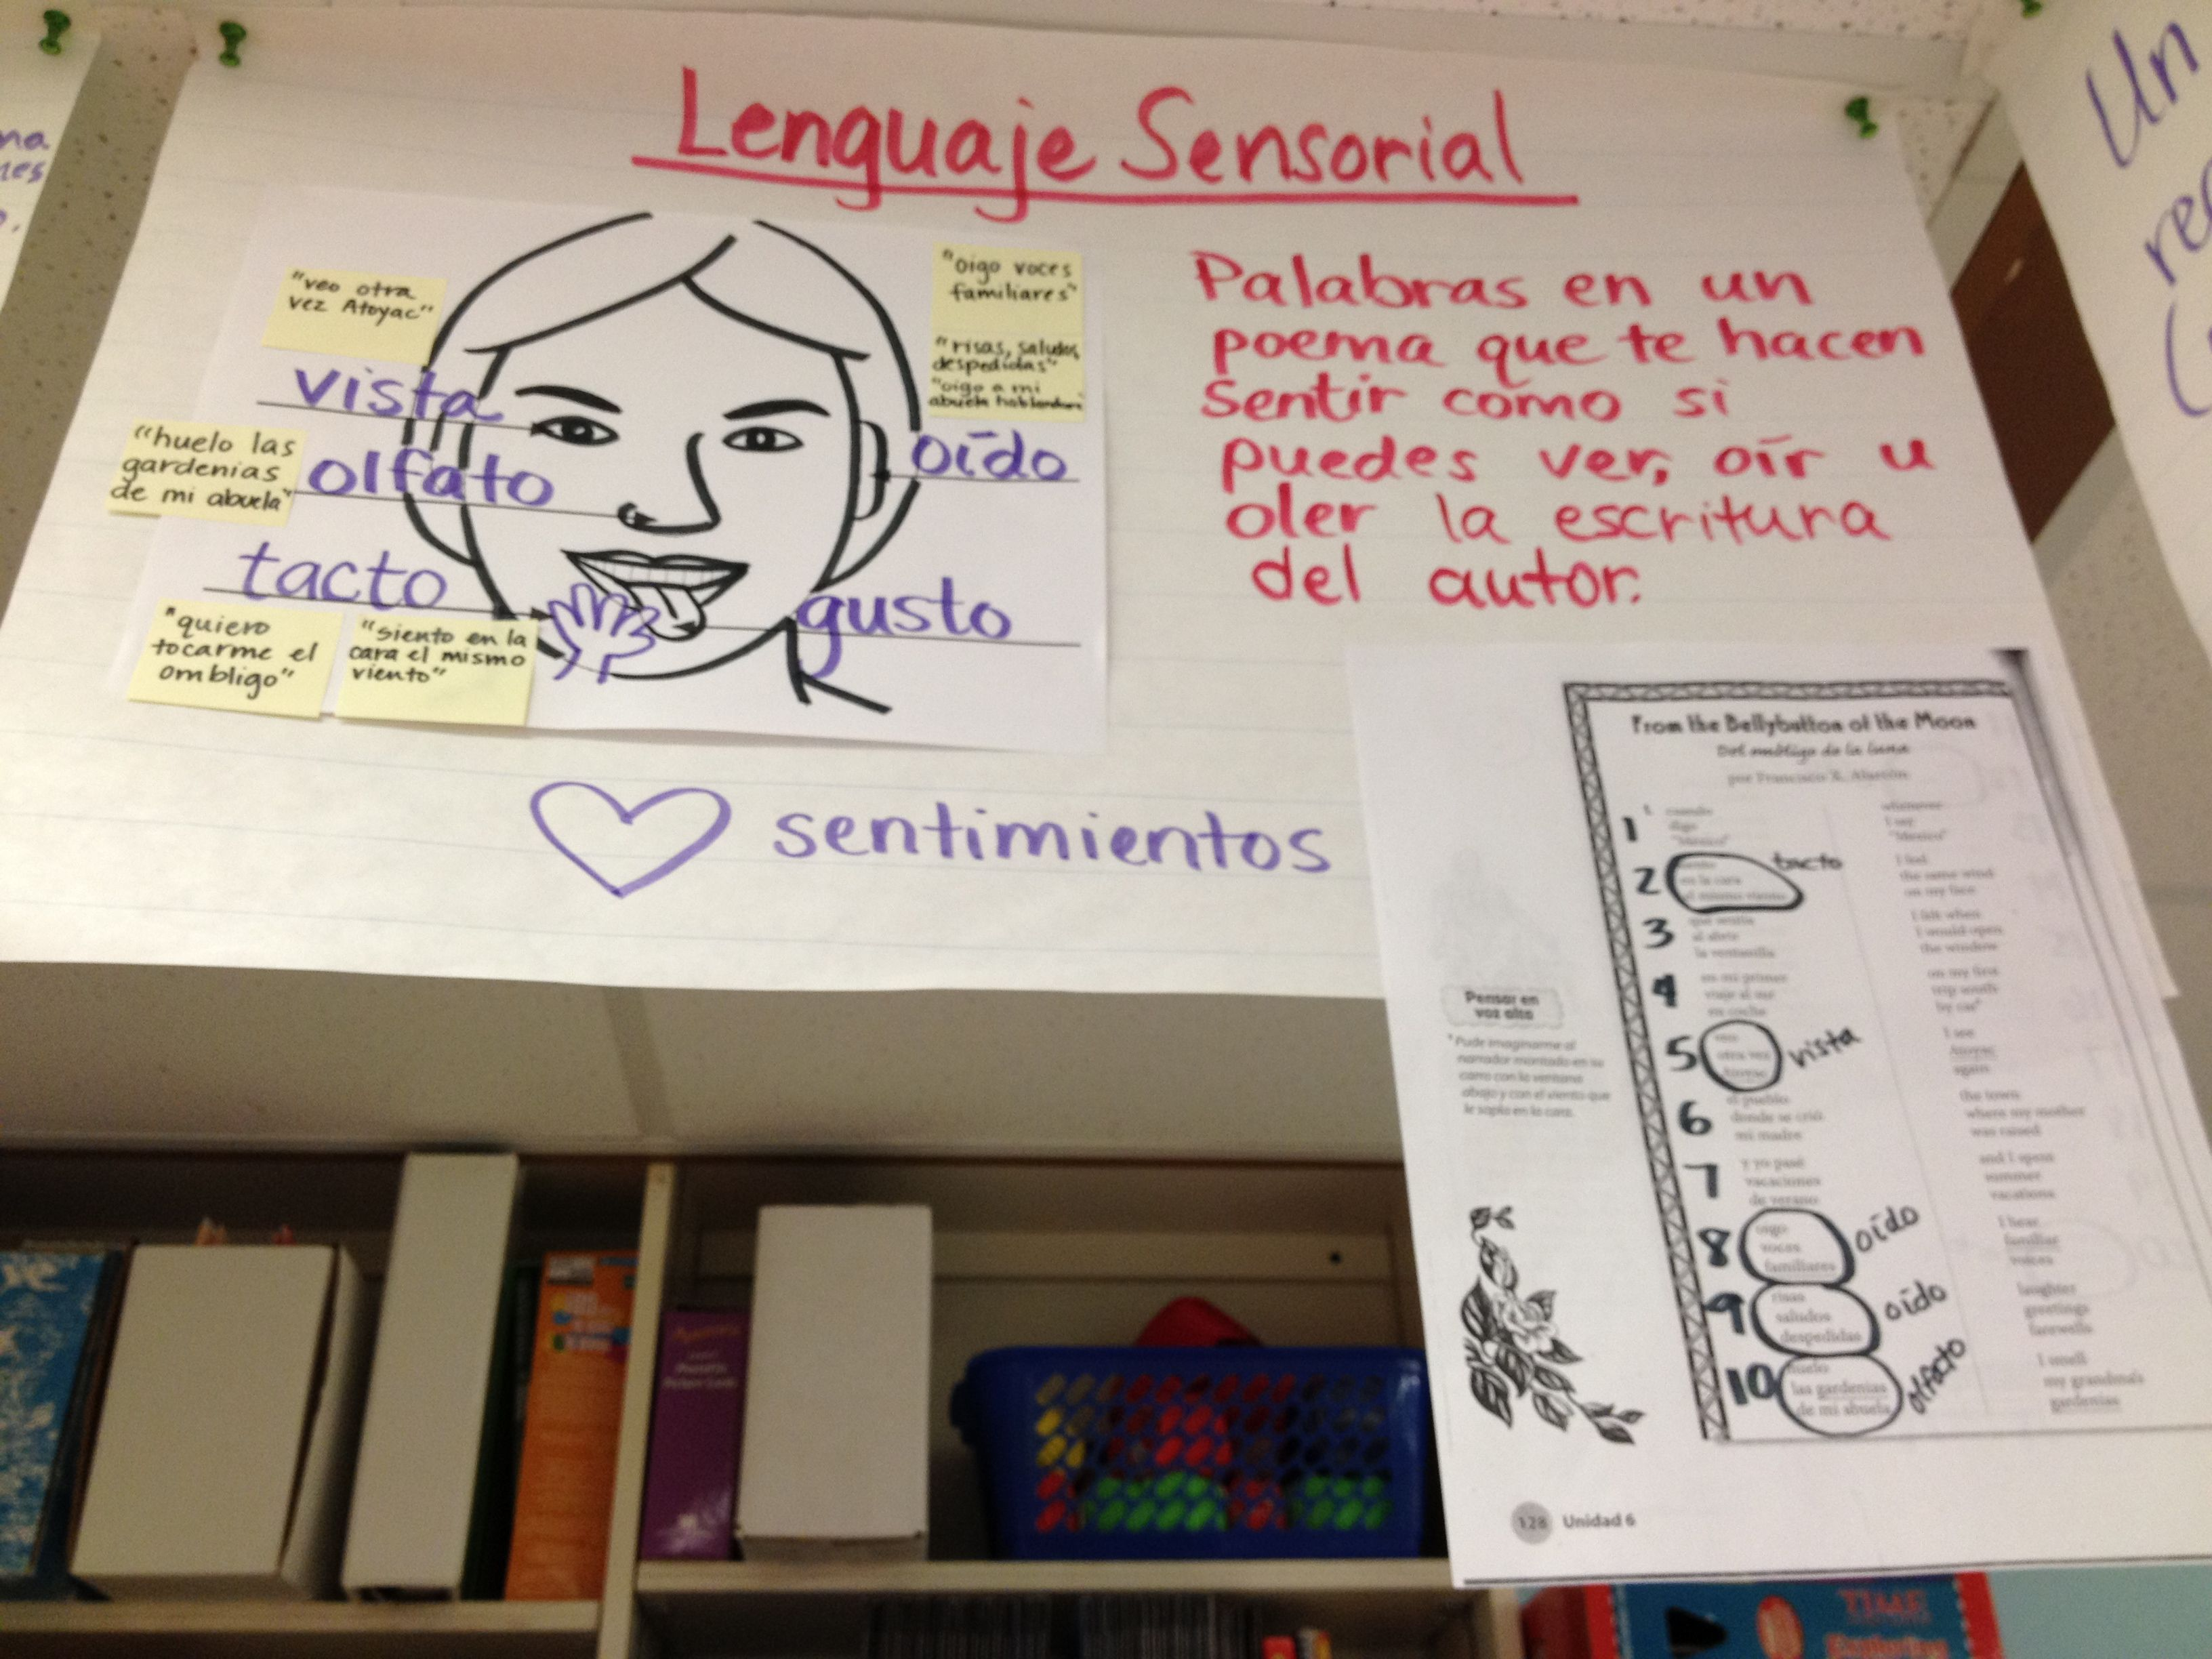 Sensory Language For Poetry Introduction Words In A Poem That Make You See Hear Or Smell The